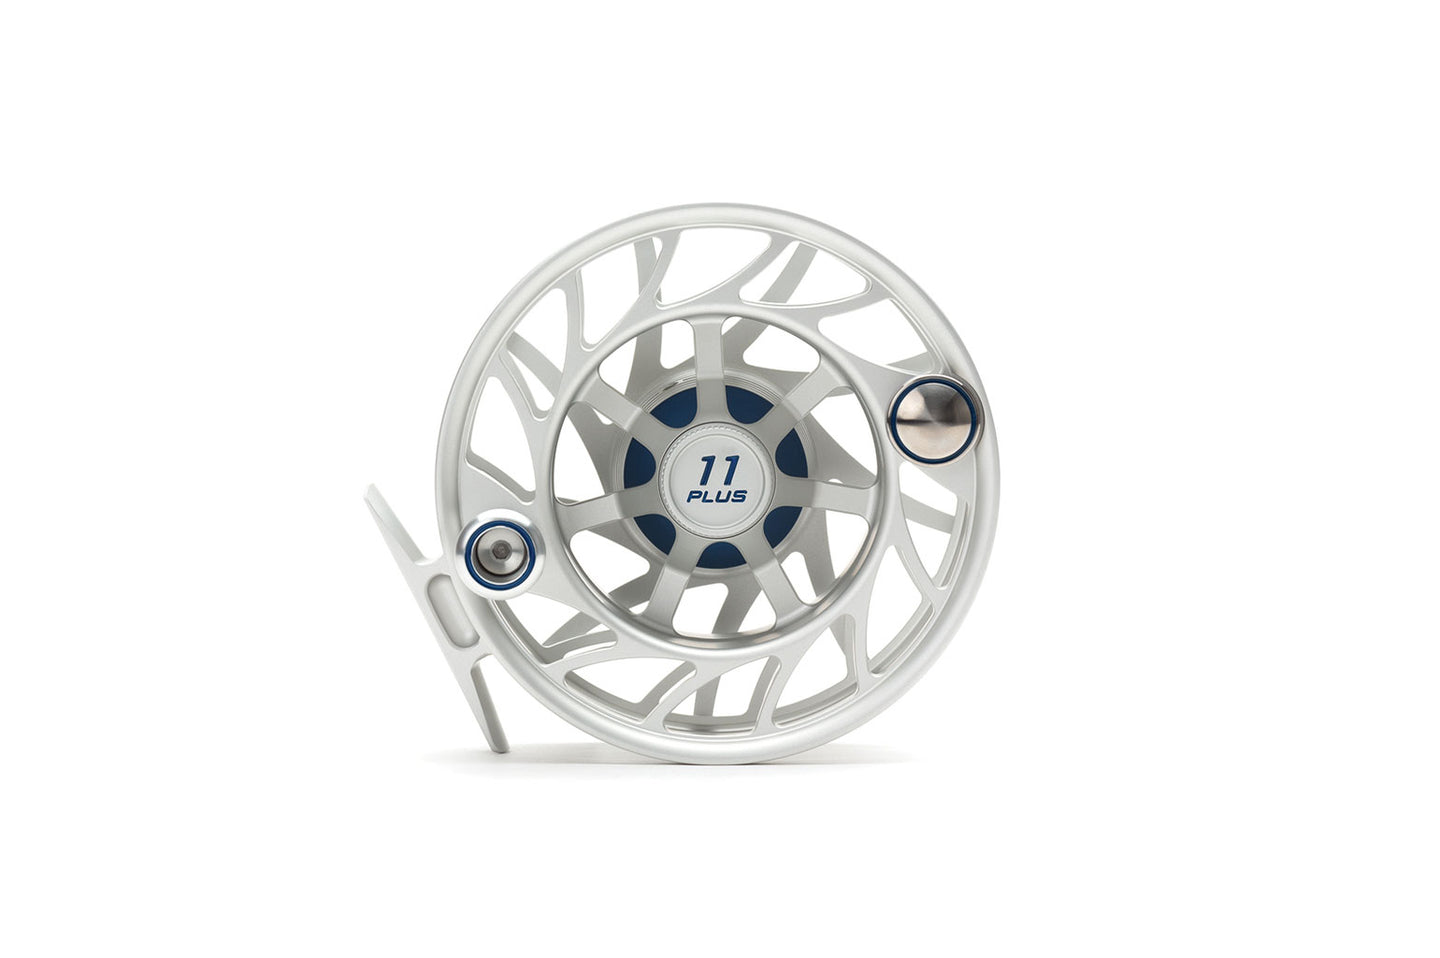 Hatch Finatic 11 Plus Gen 2 Saltwater Fly Reels